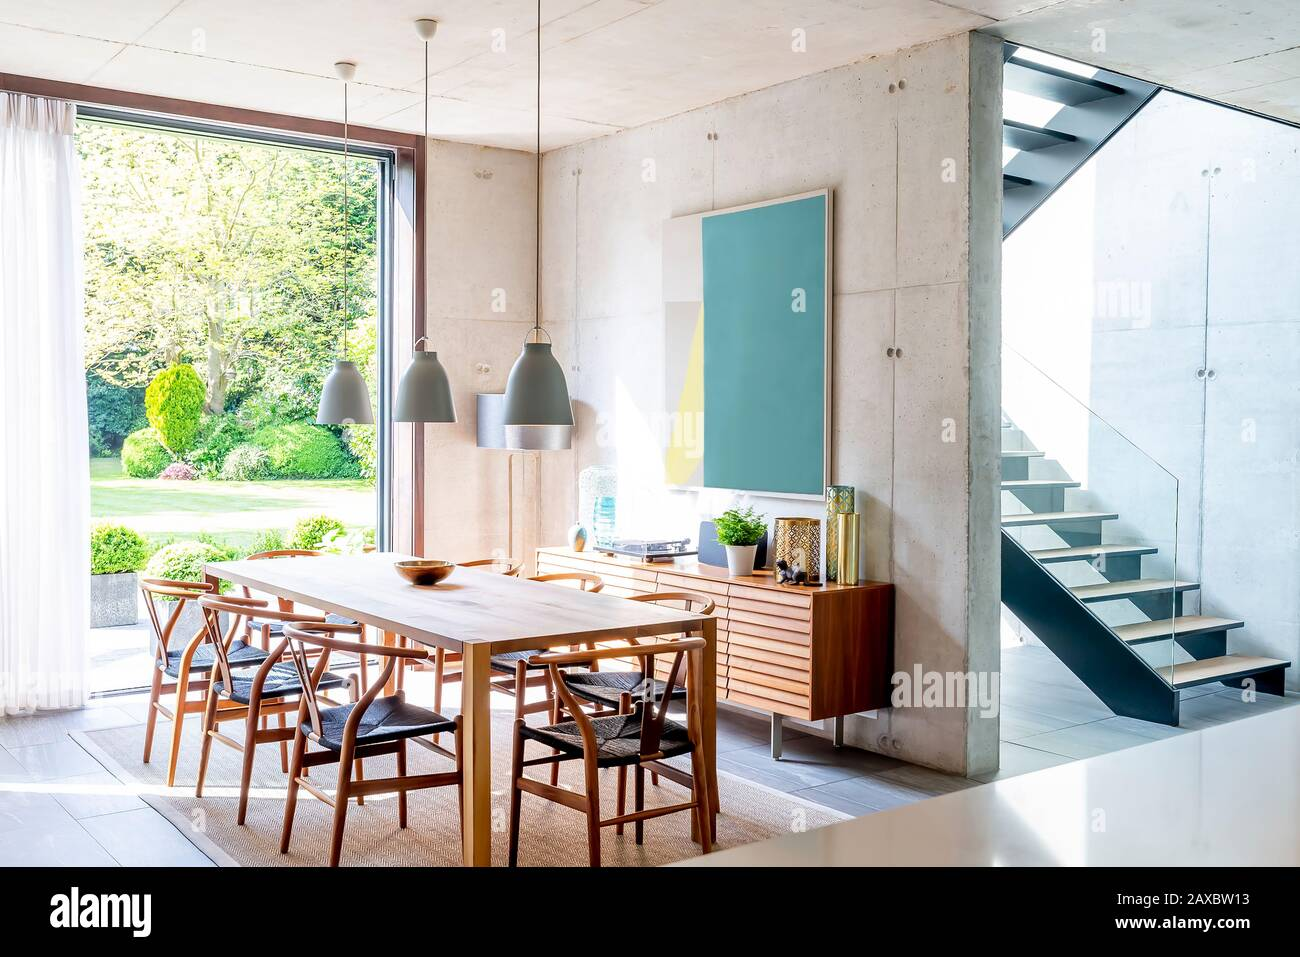 Pendant Lights Over Dining Table In Modern Dining Room Stock Photo Alamy